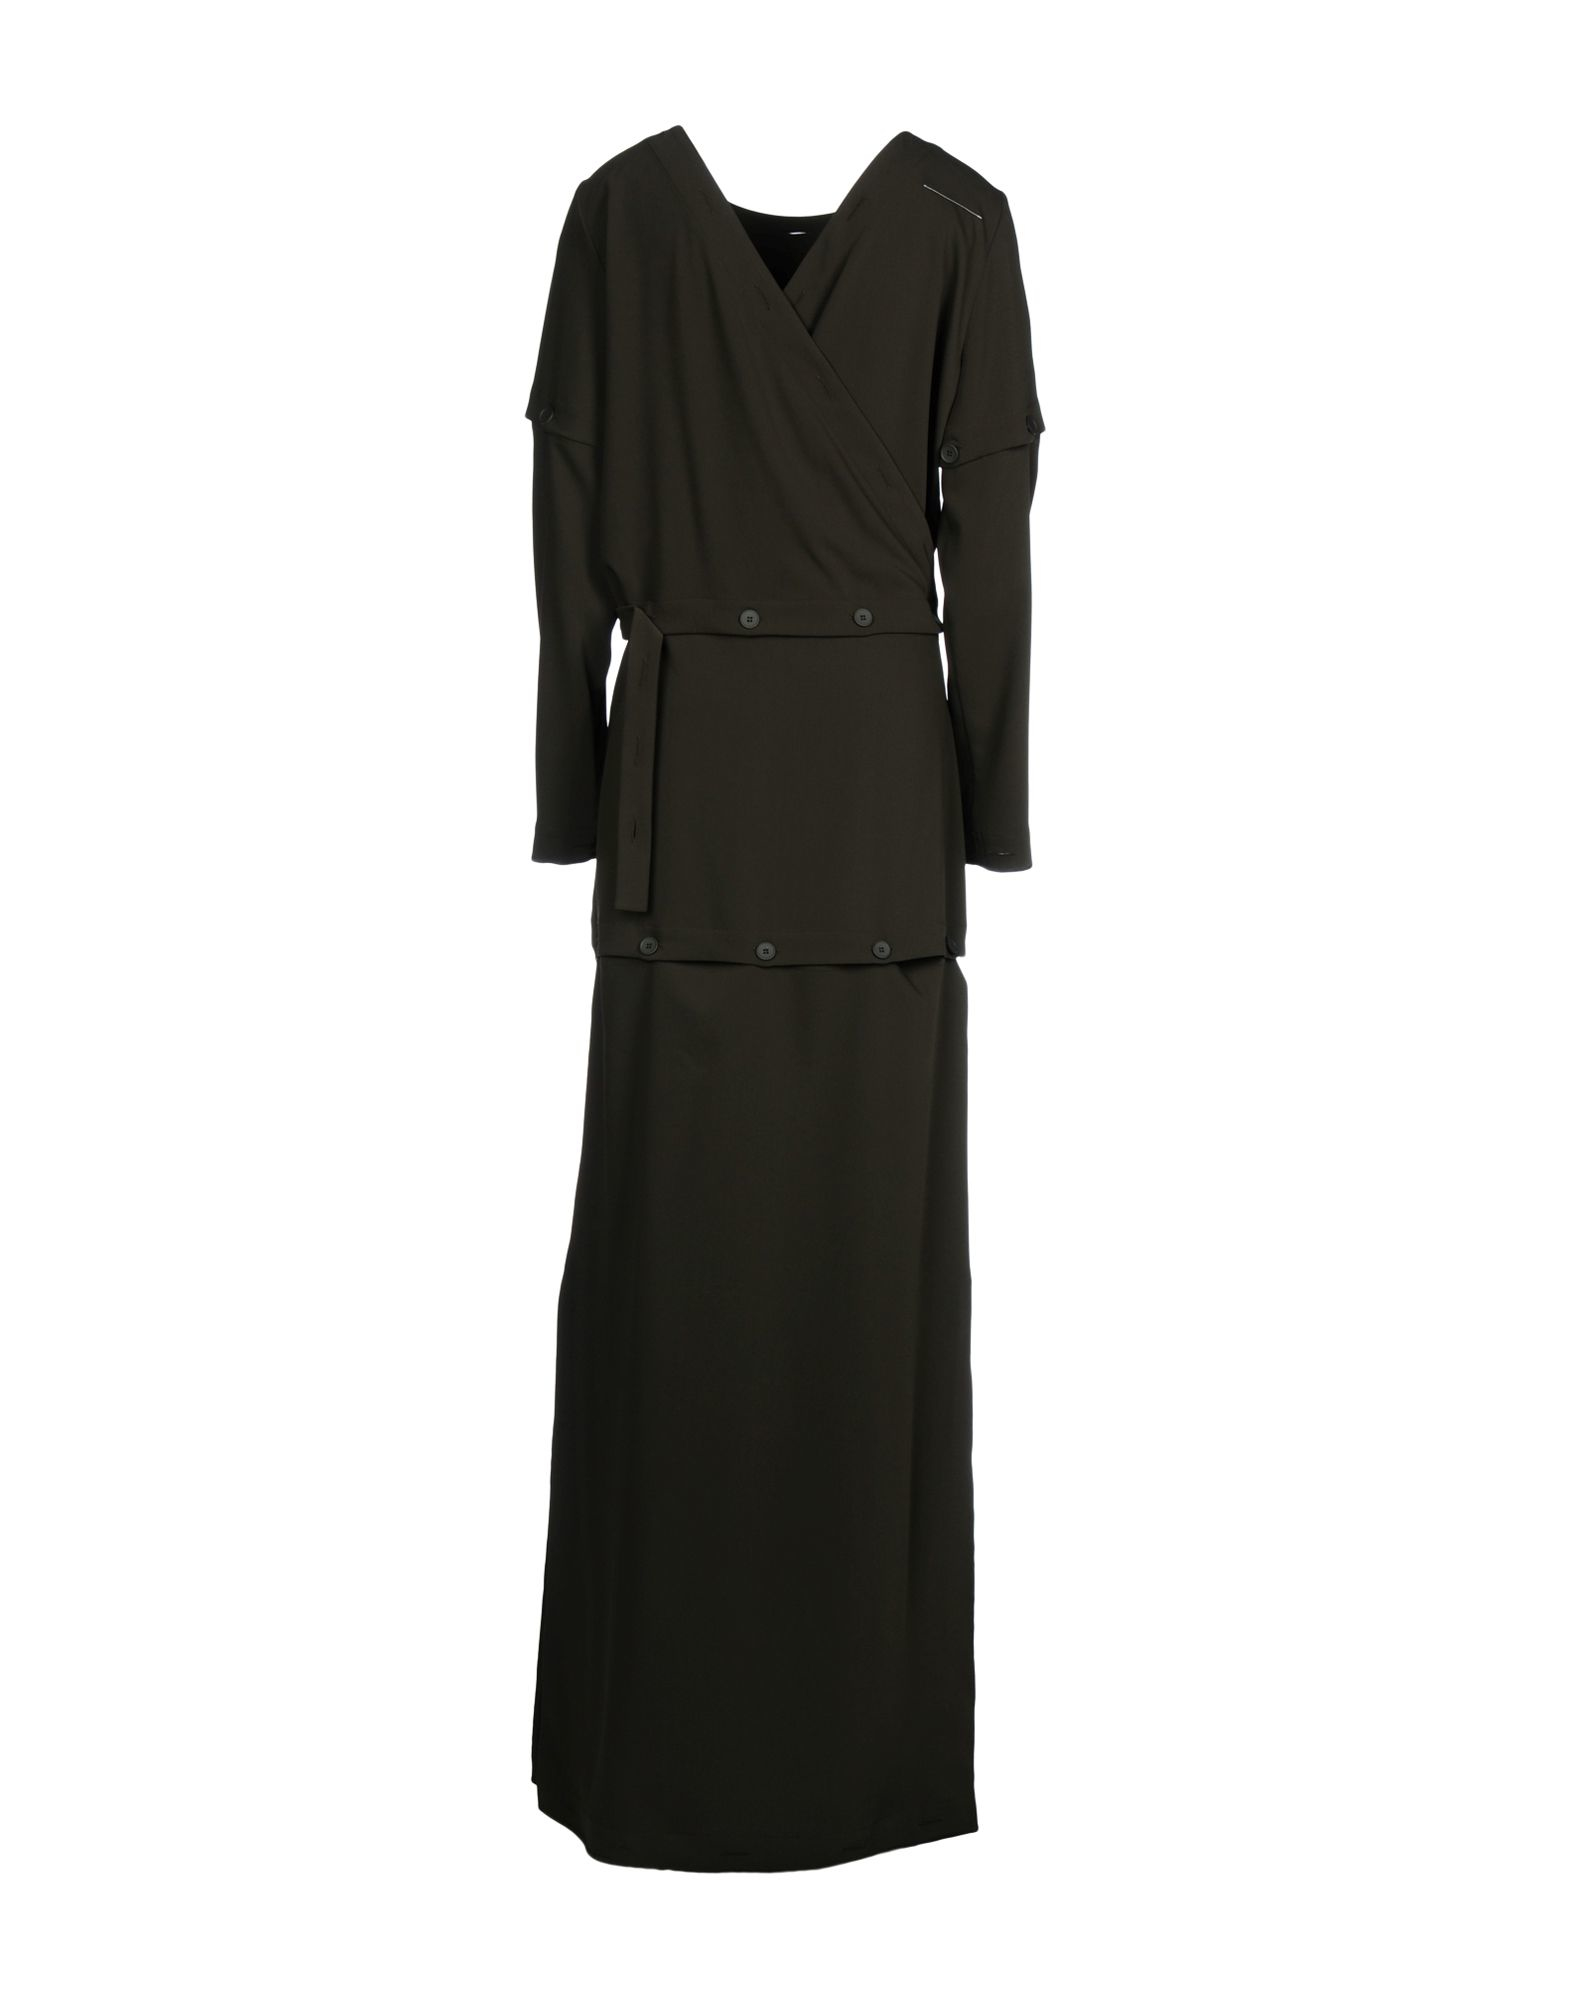 Mm6 by maison martin margiela long dress in green for Mm6 maison margiela